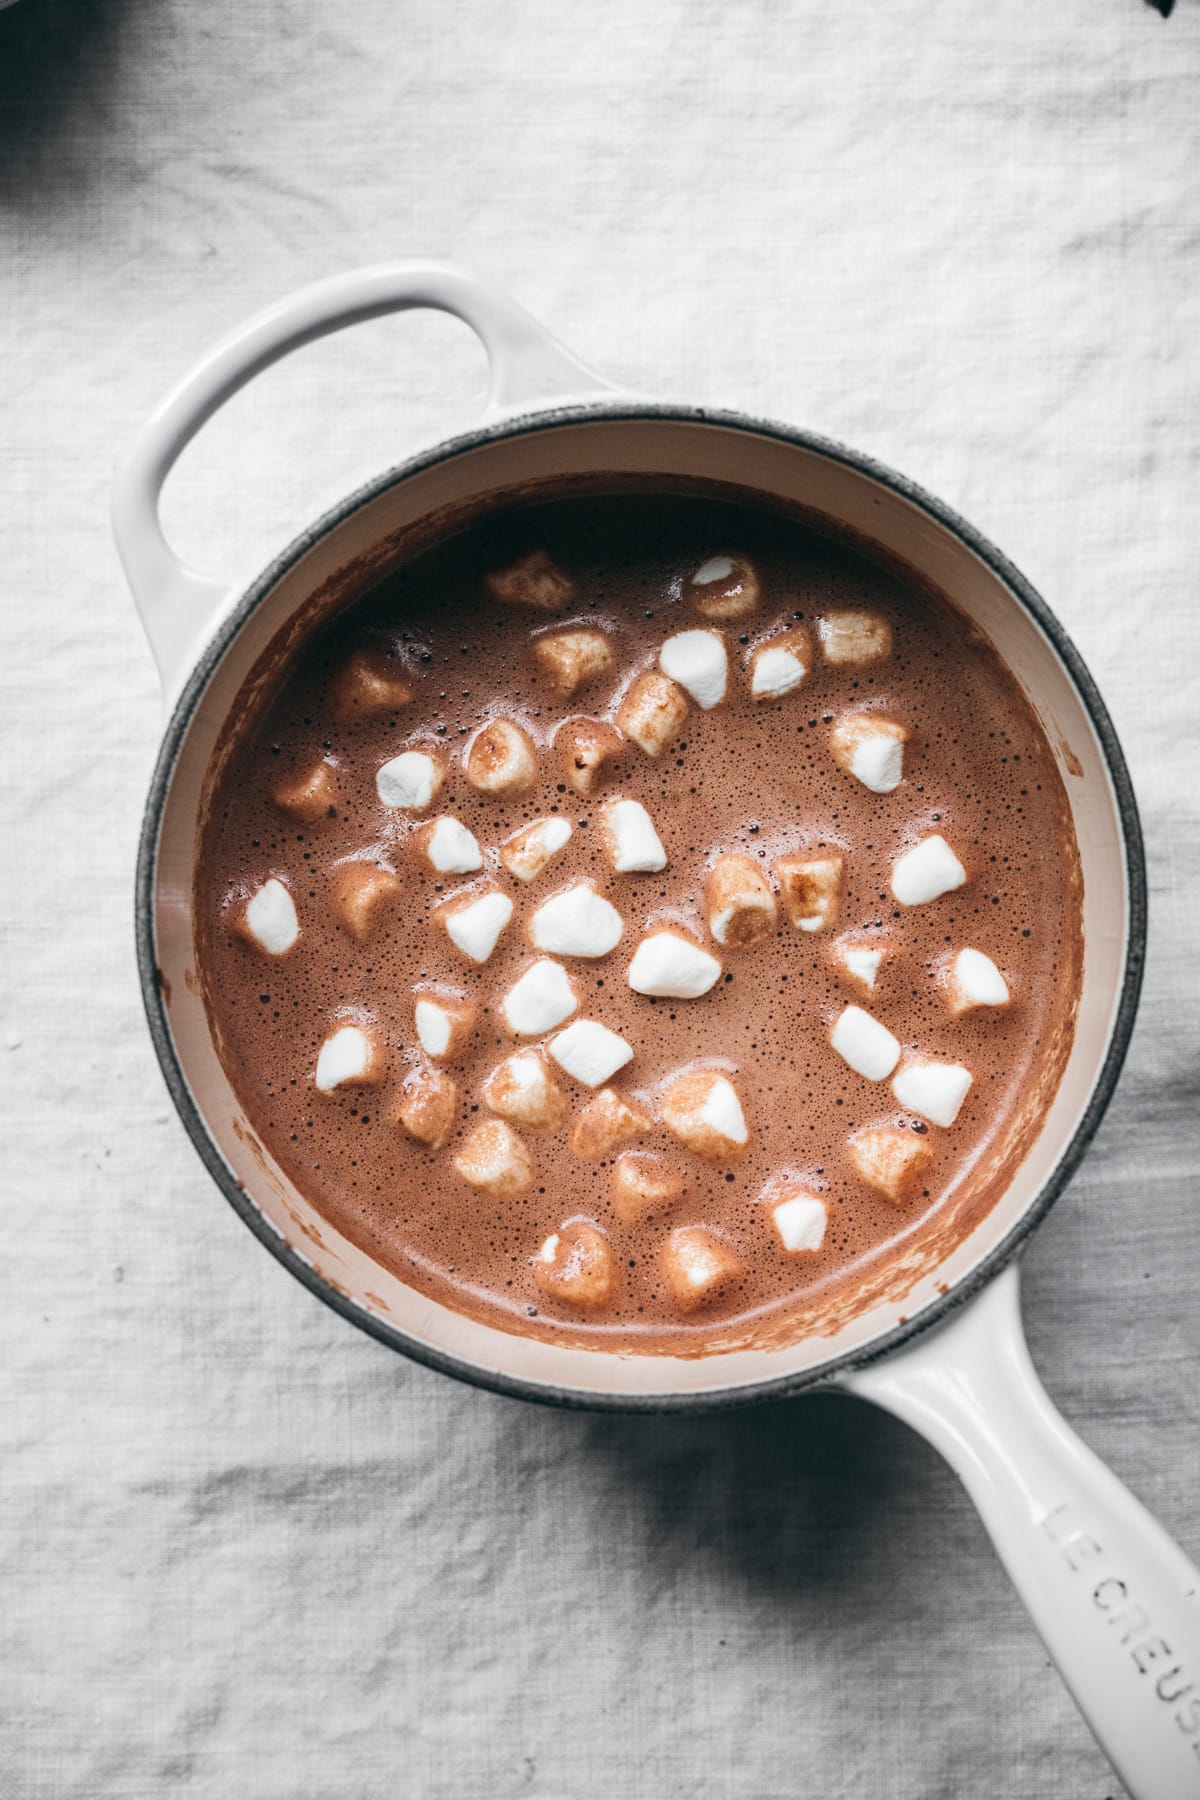 vegan hot chocolate in white saucepan topped with mini marshmallows.